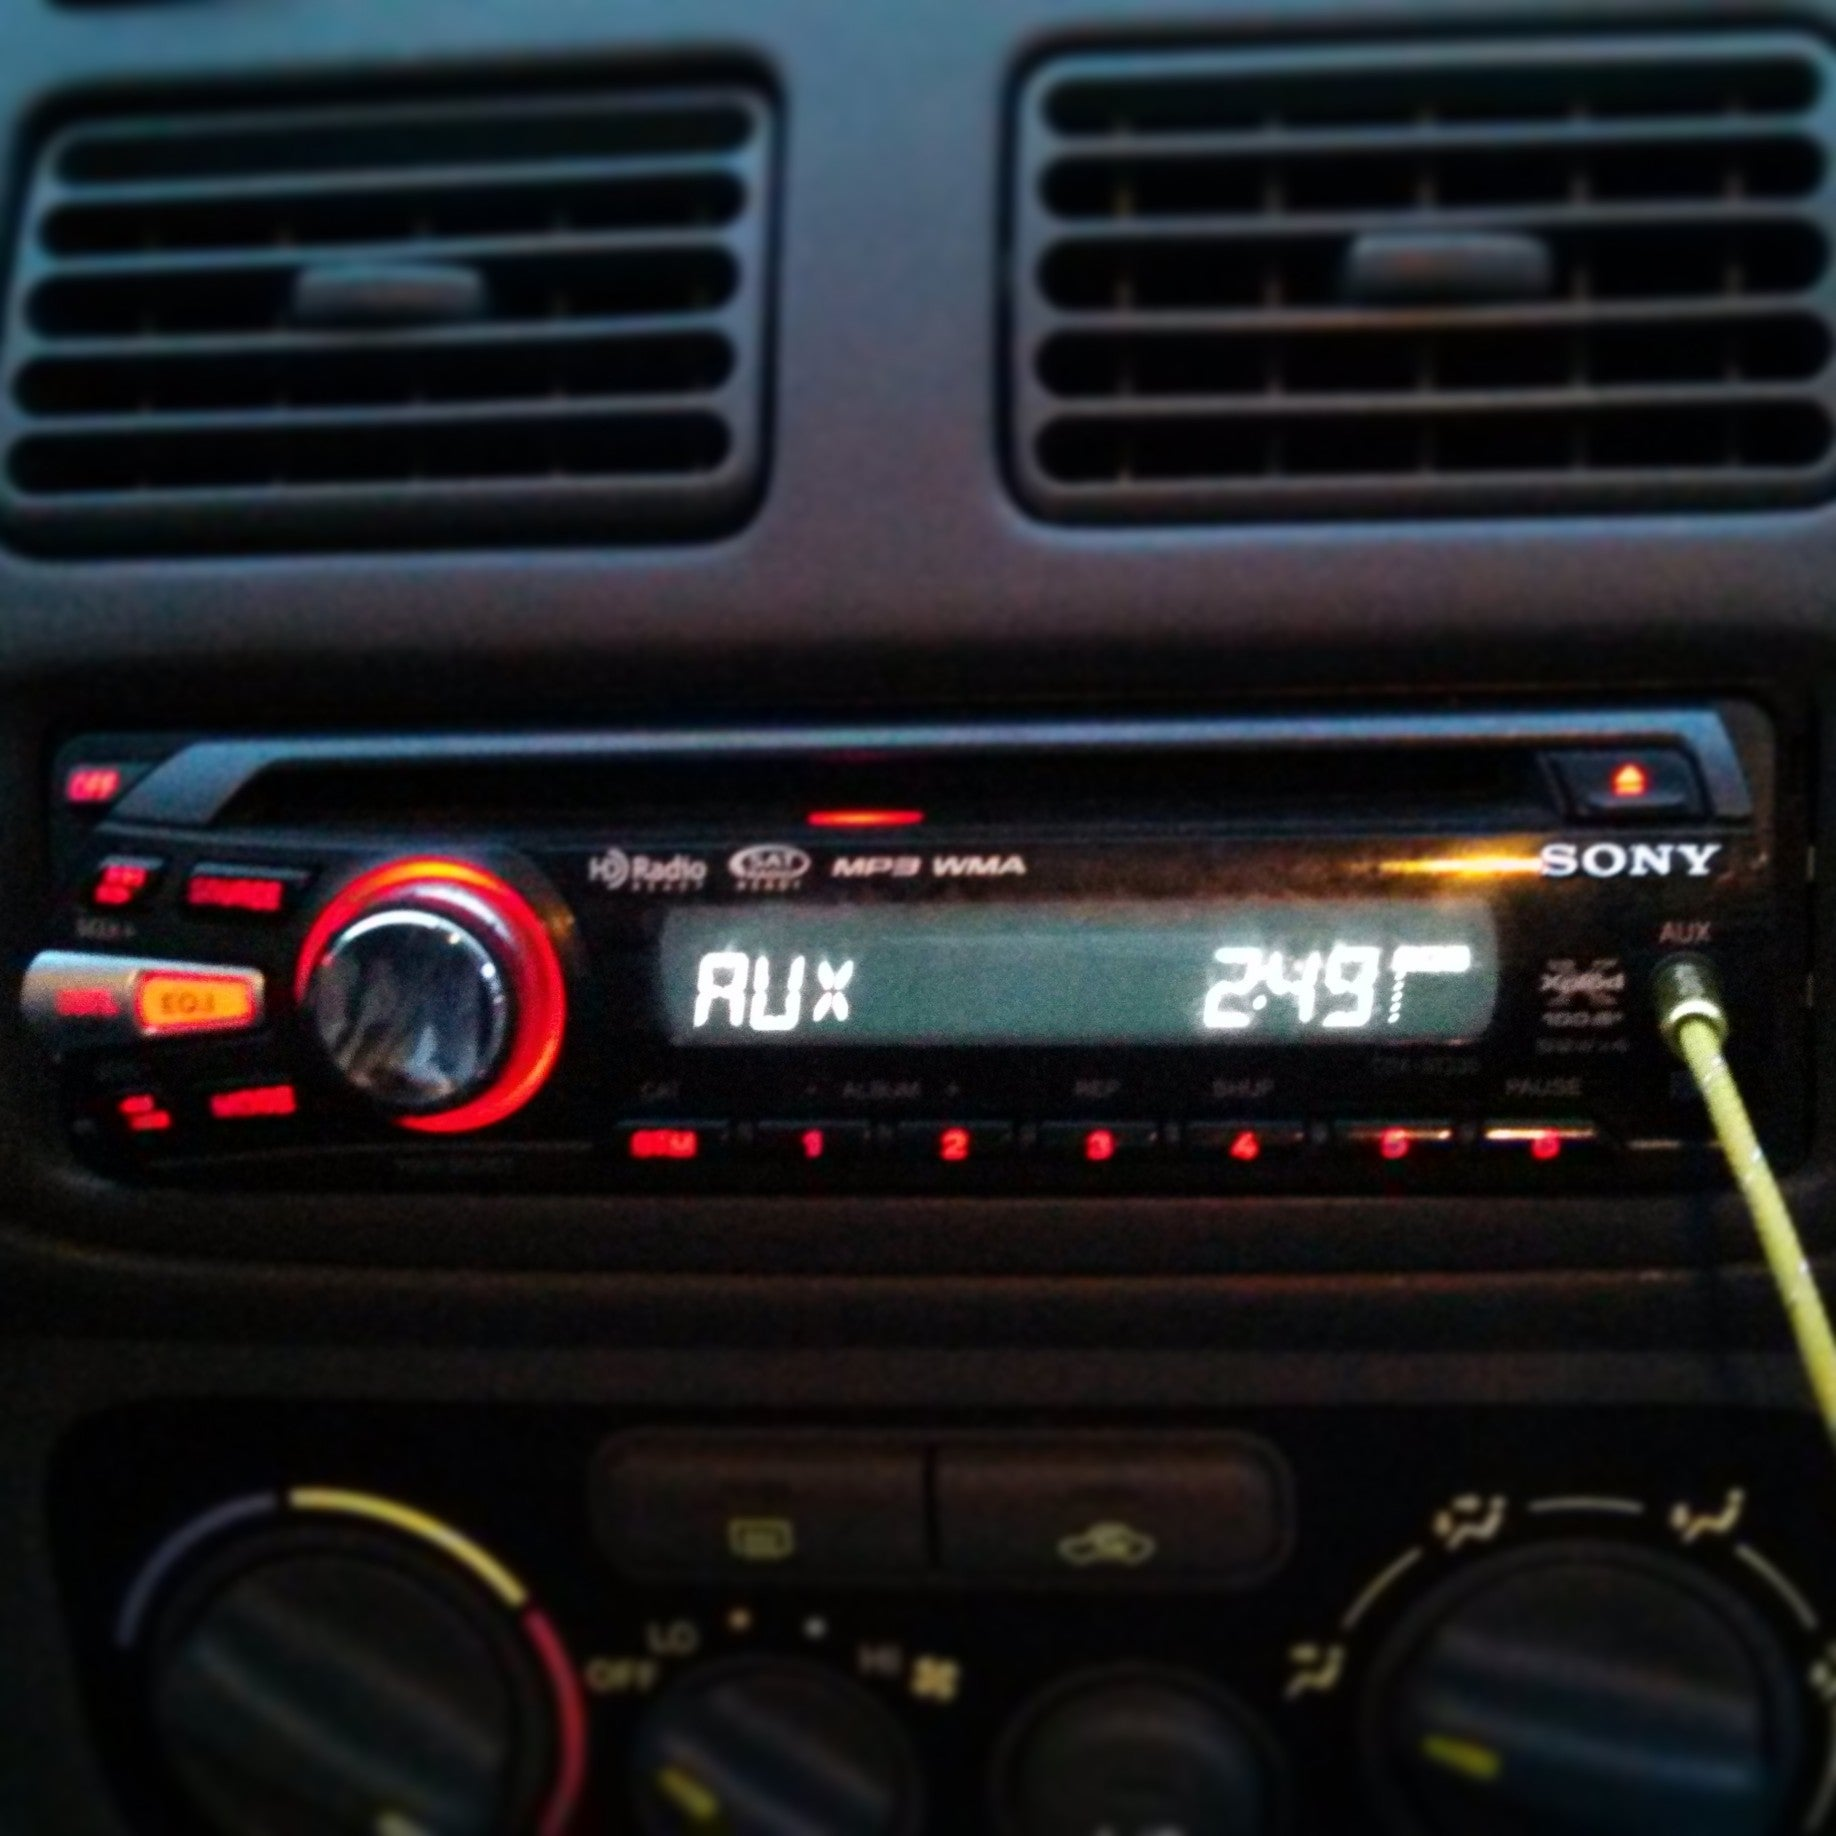 Install Aftermarket Radio in 2002 Toyota Corolla : 9 Steps - InstructablesInstructables